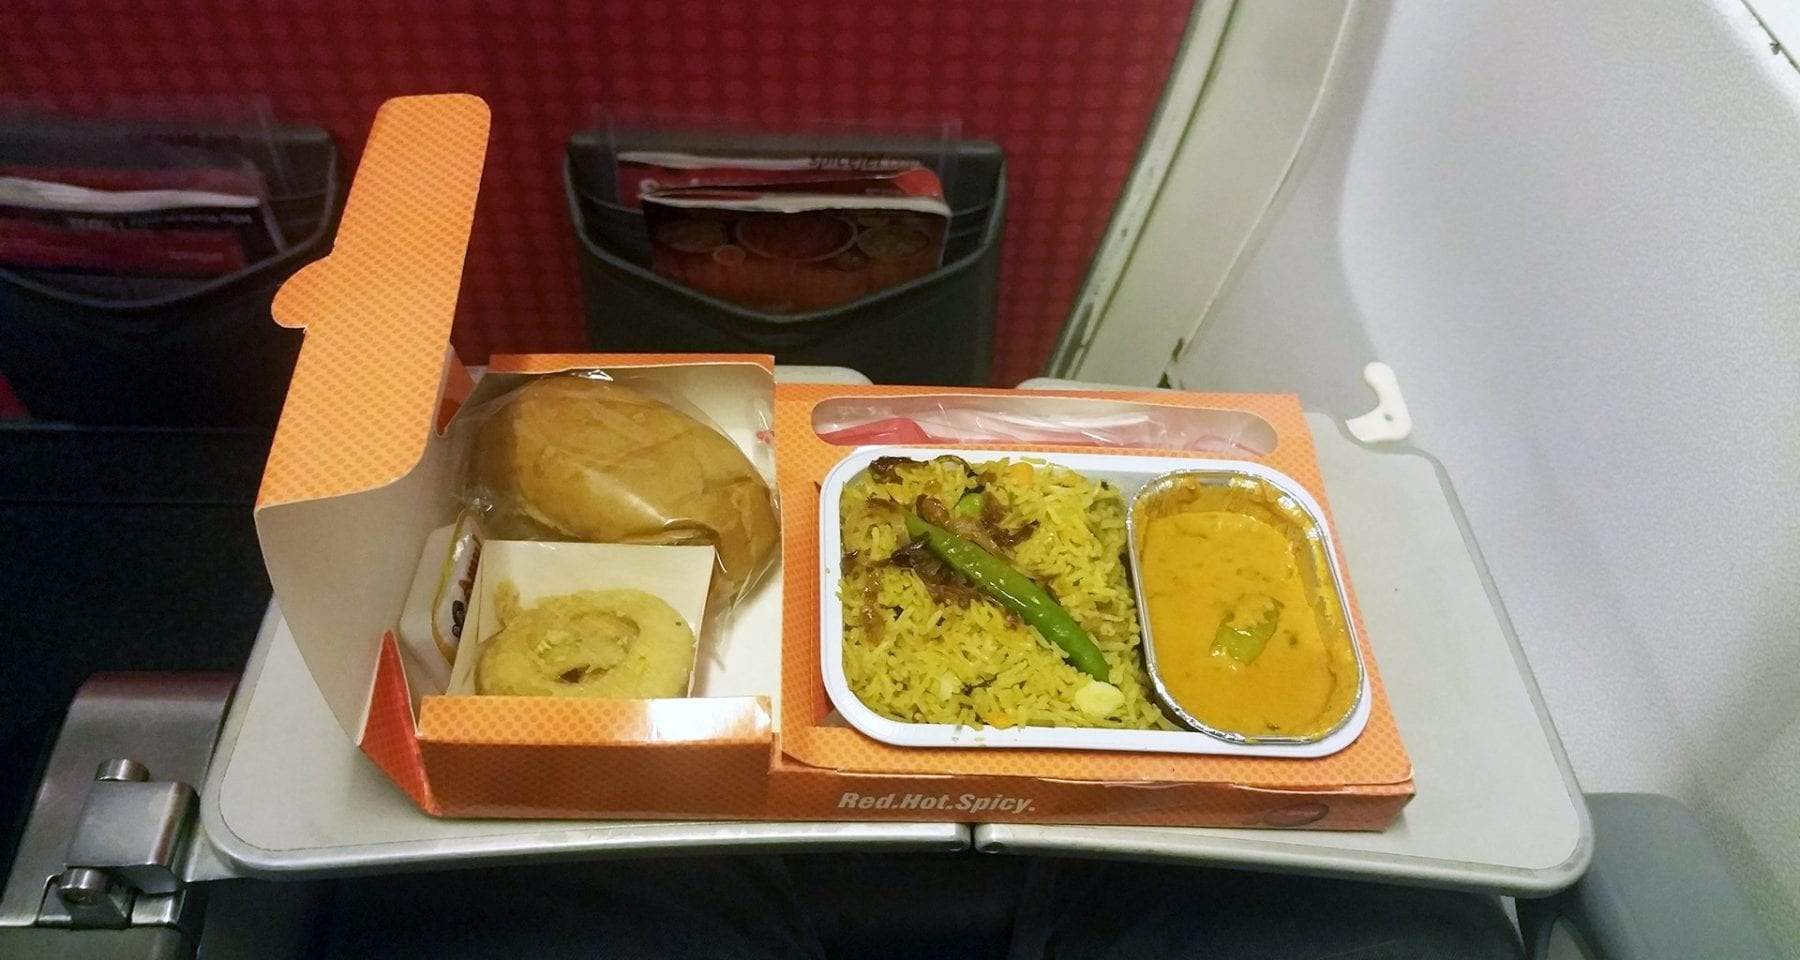 Spicejet economy class pre order meal